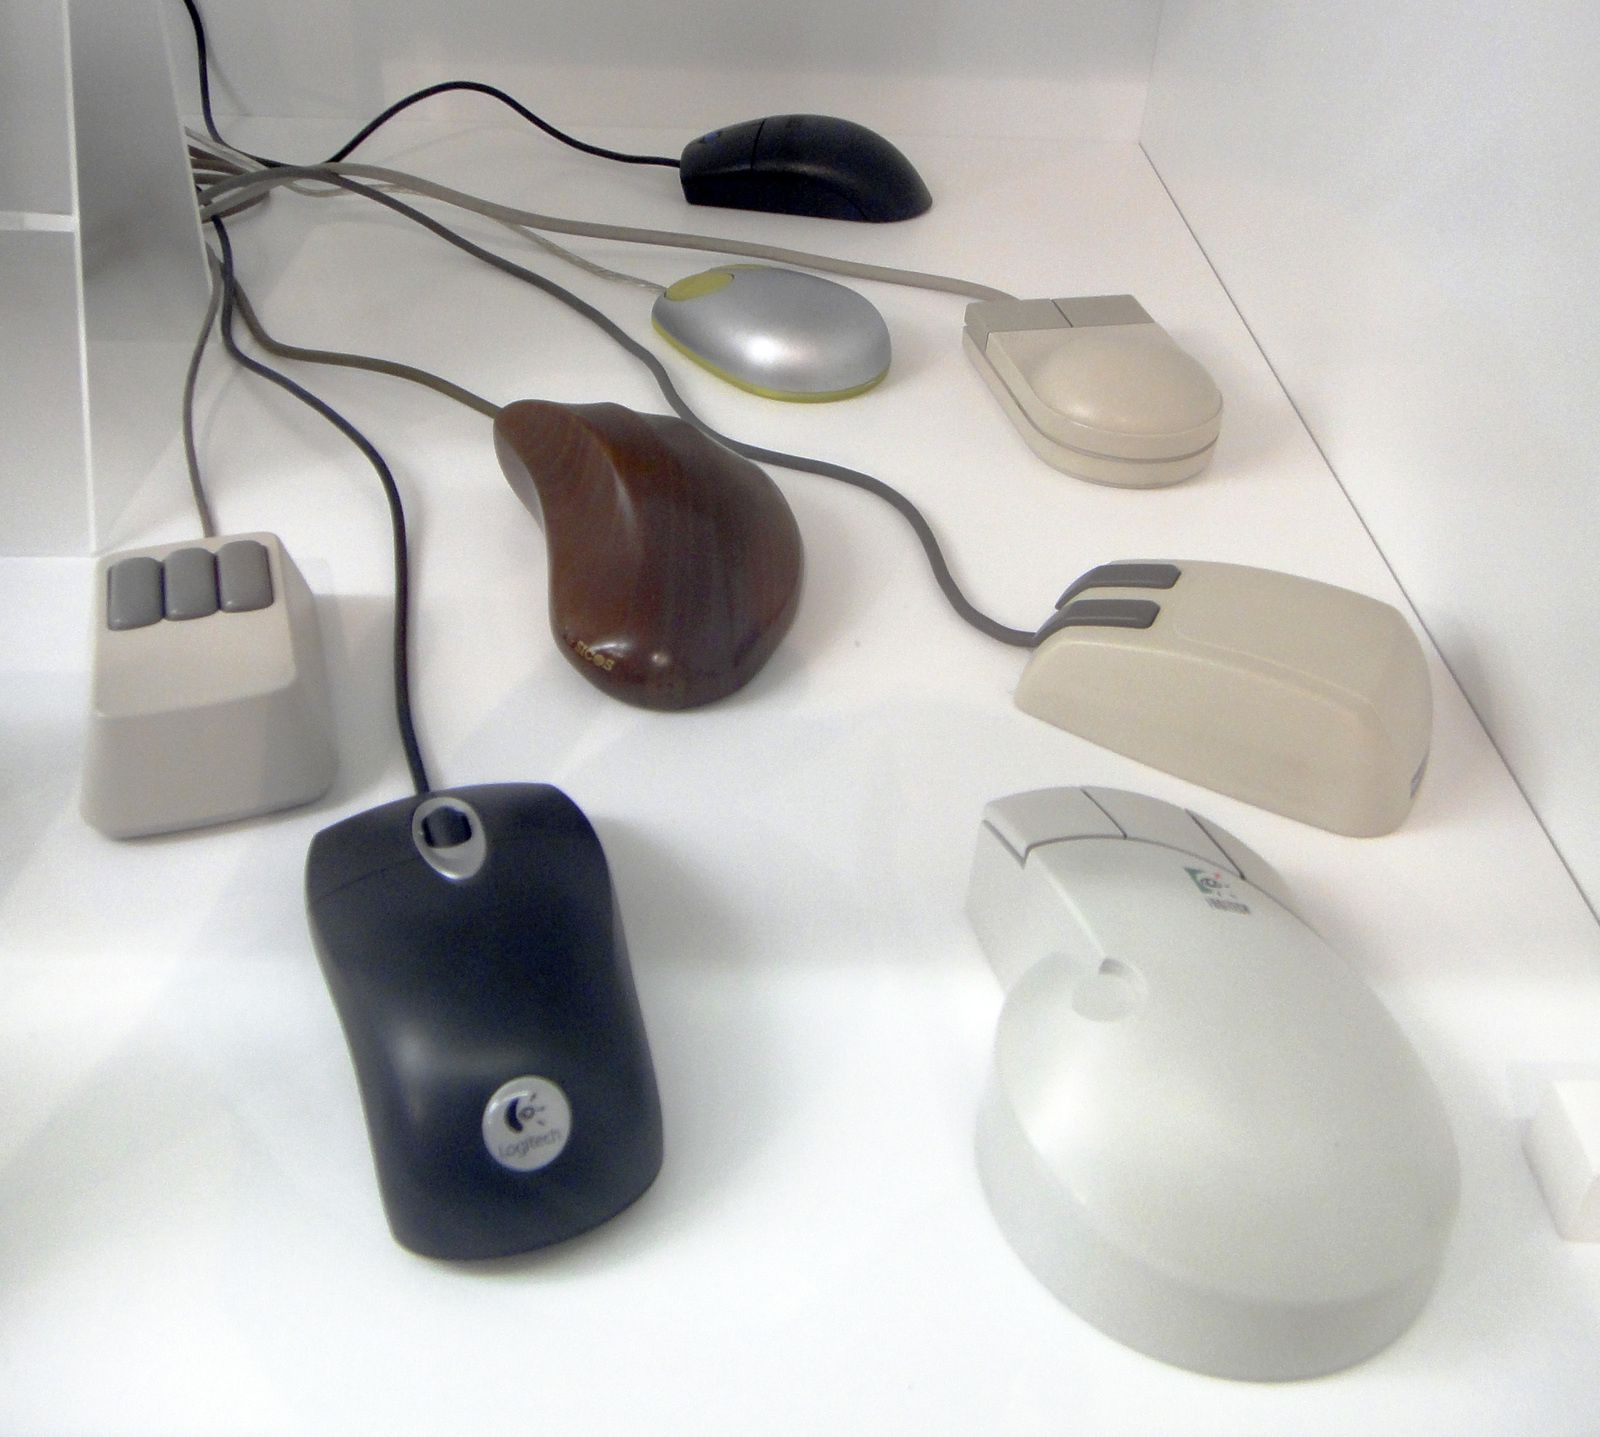 © Assorted computer mice - MfK Bern by Sandstein - Creative Wikimedia Commons